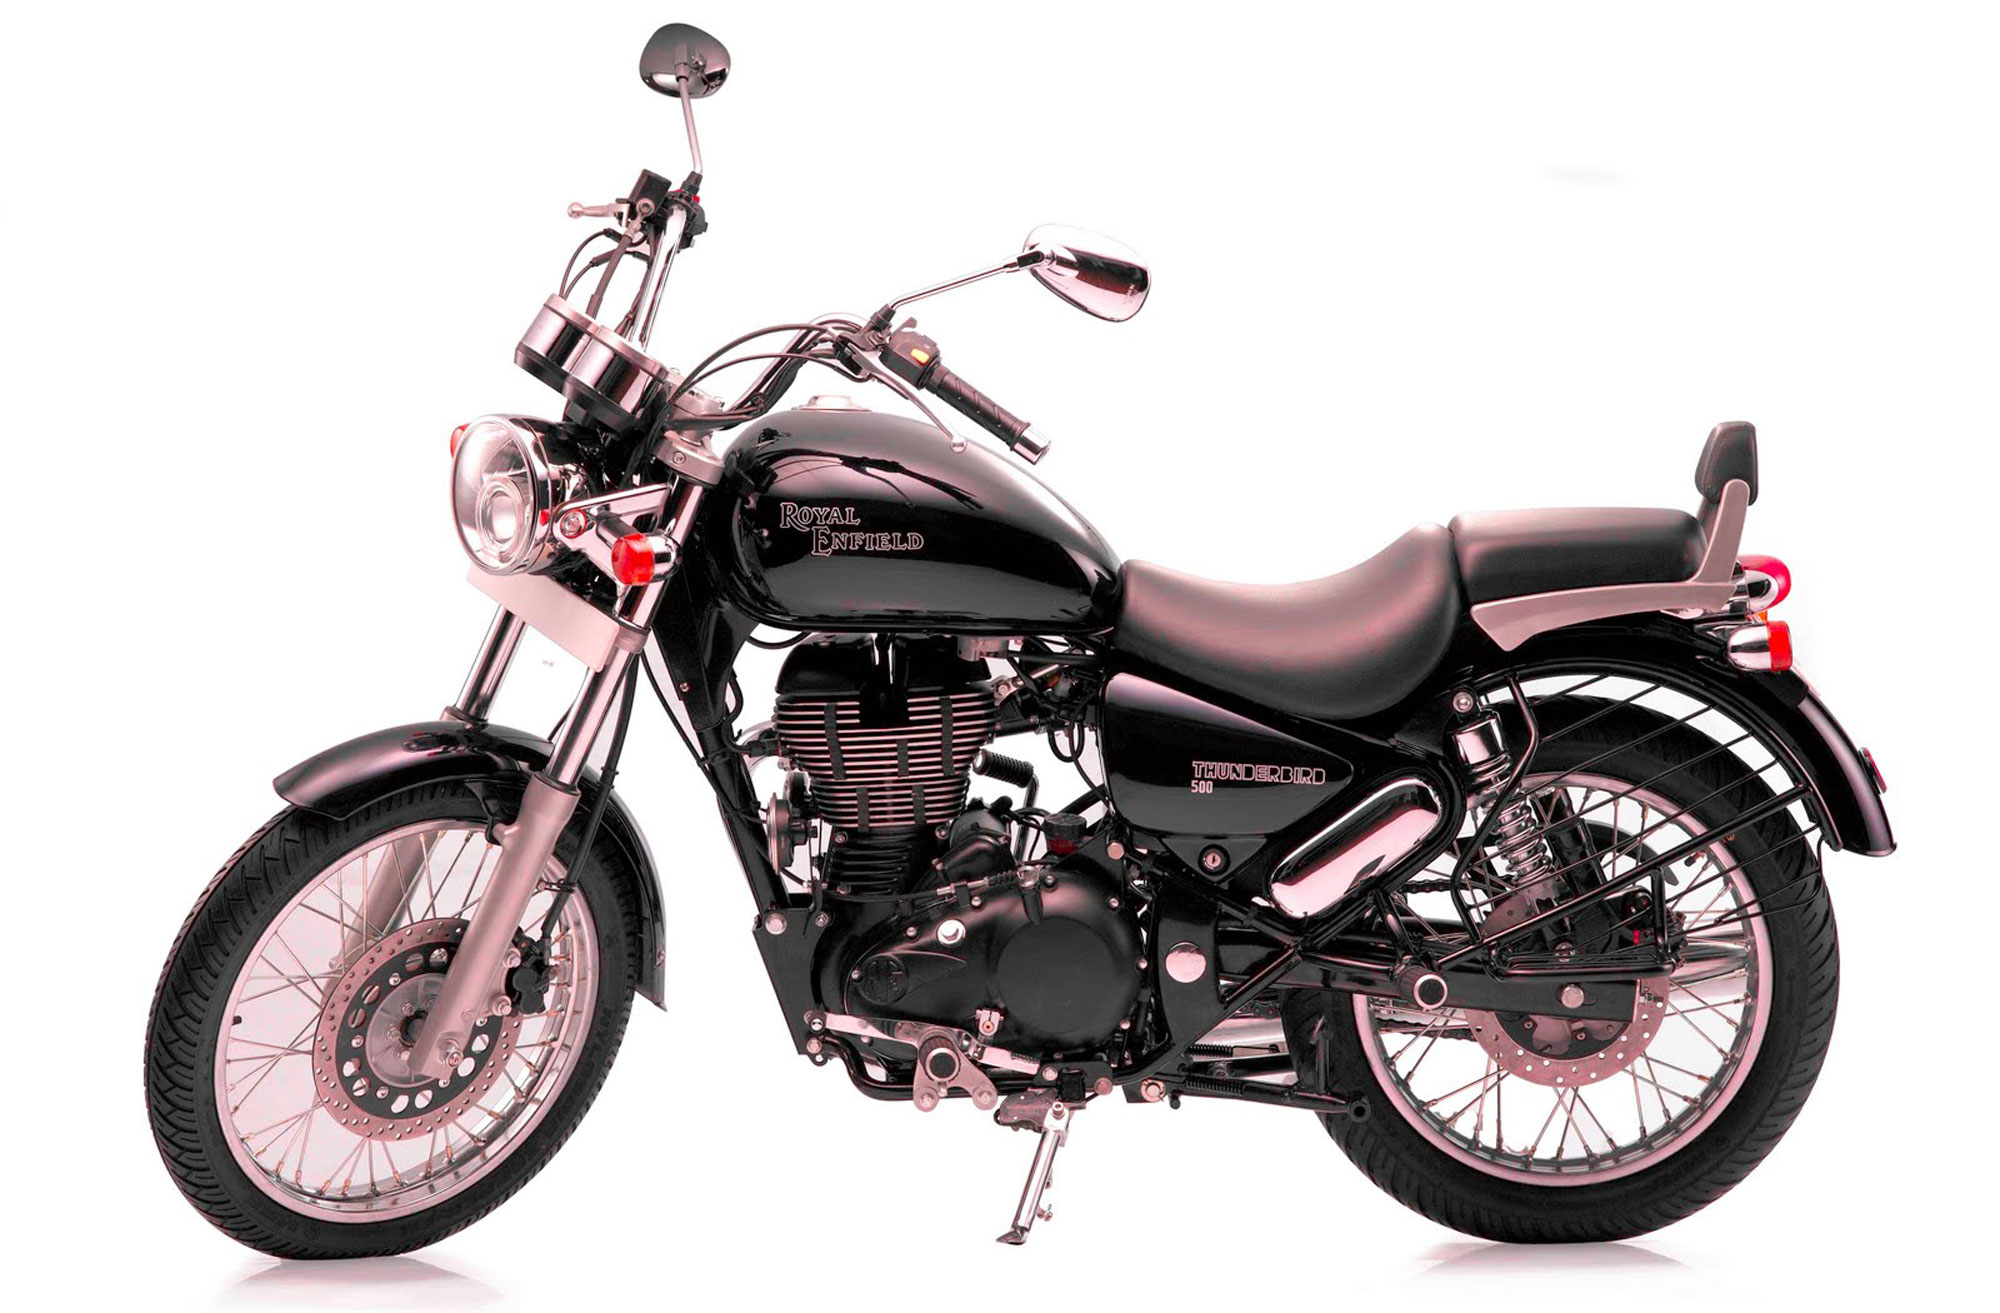 2013 royal enfield thunderbird 500 top speed